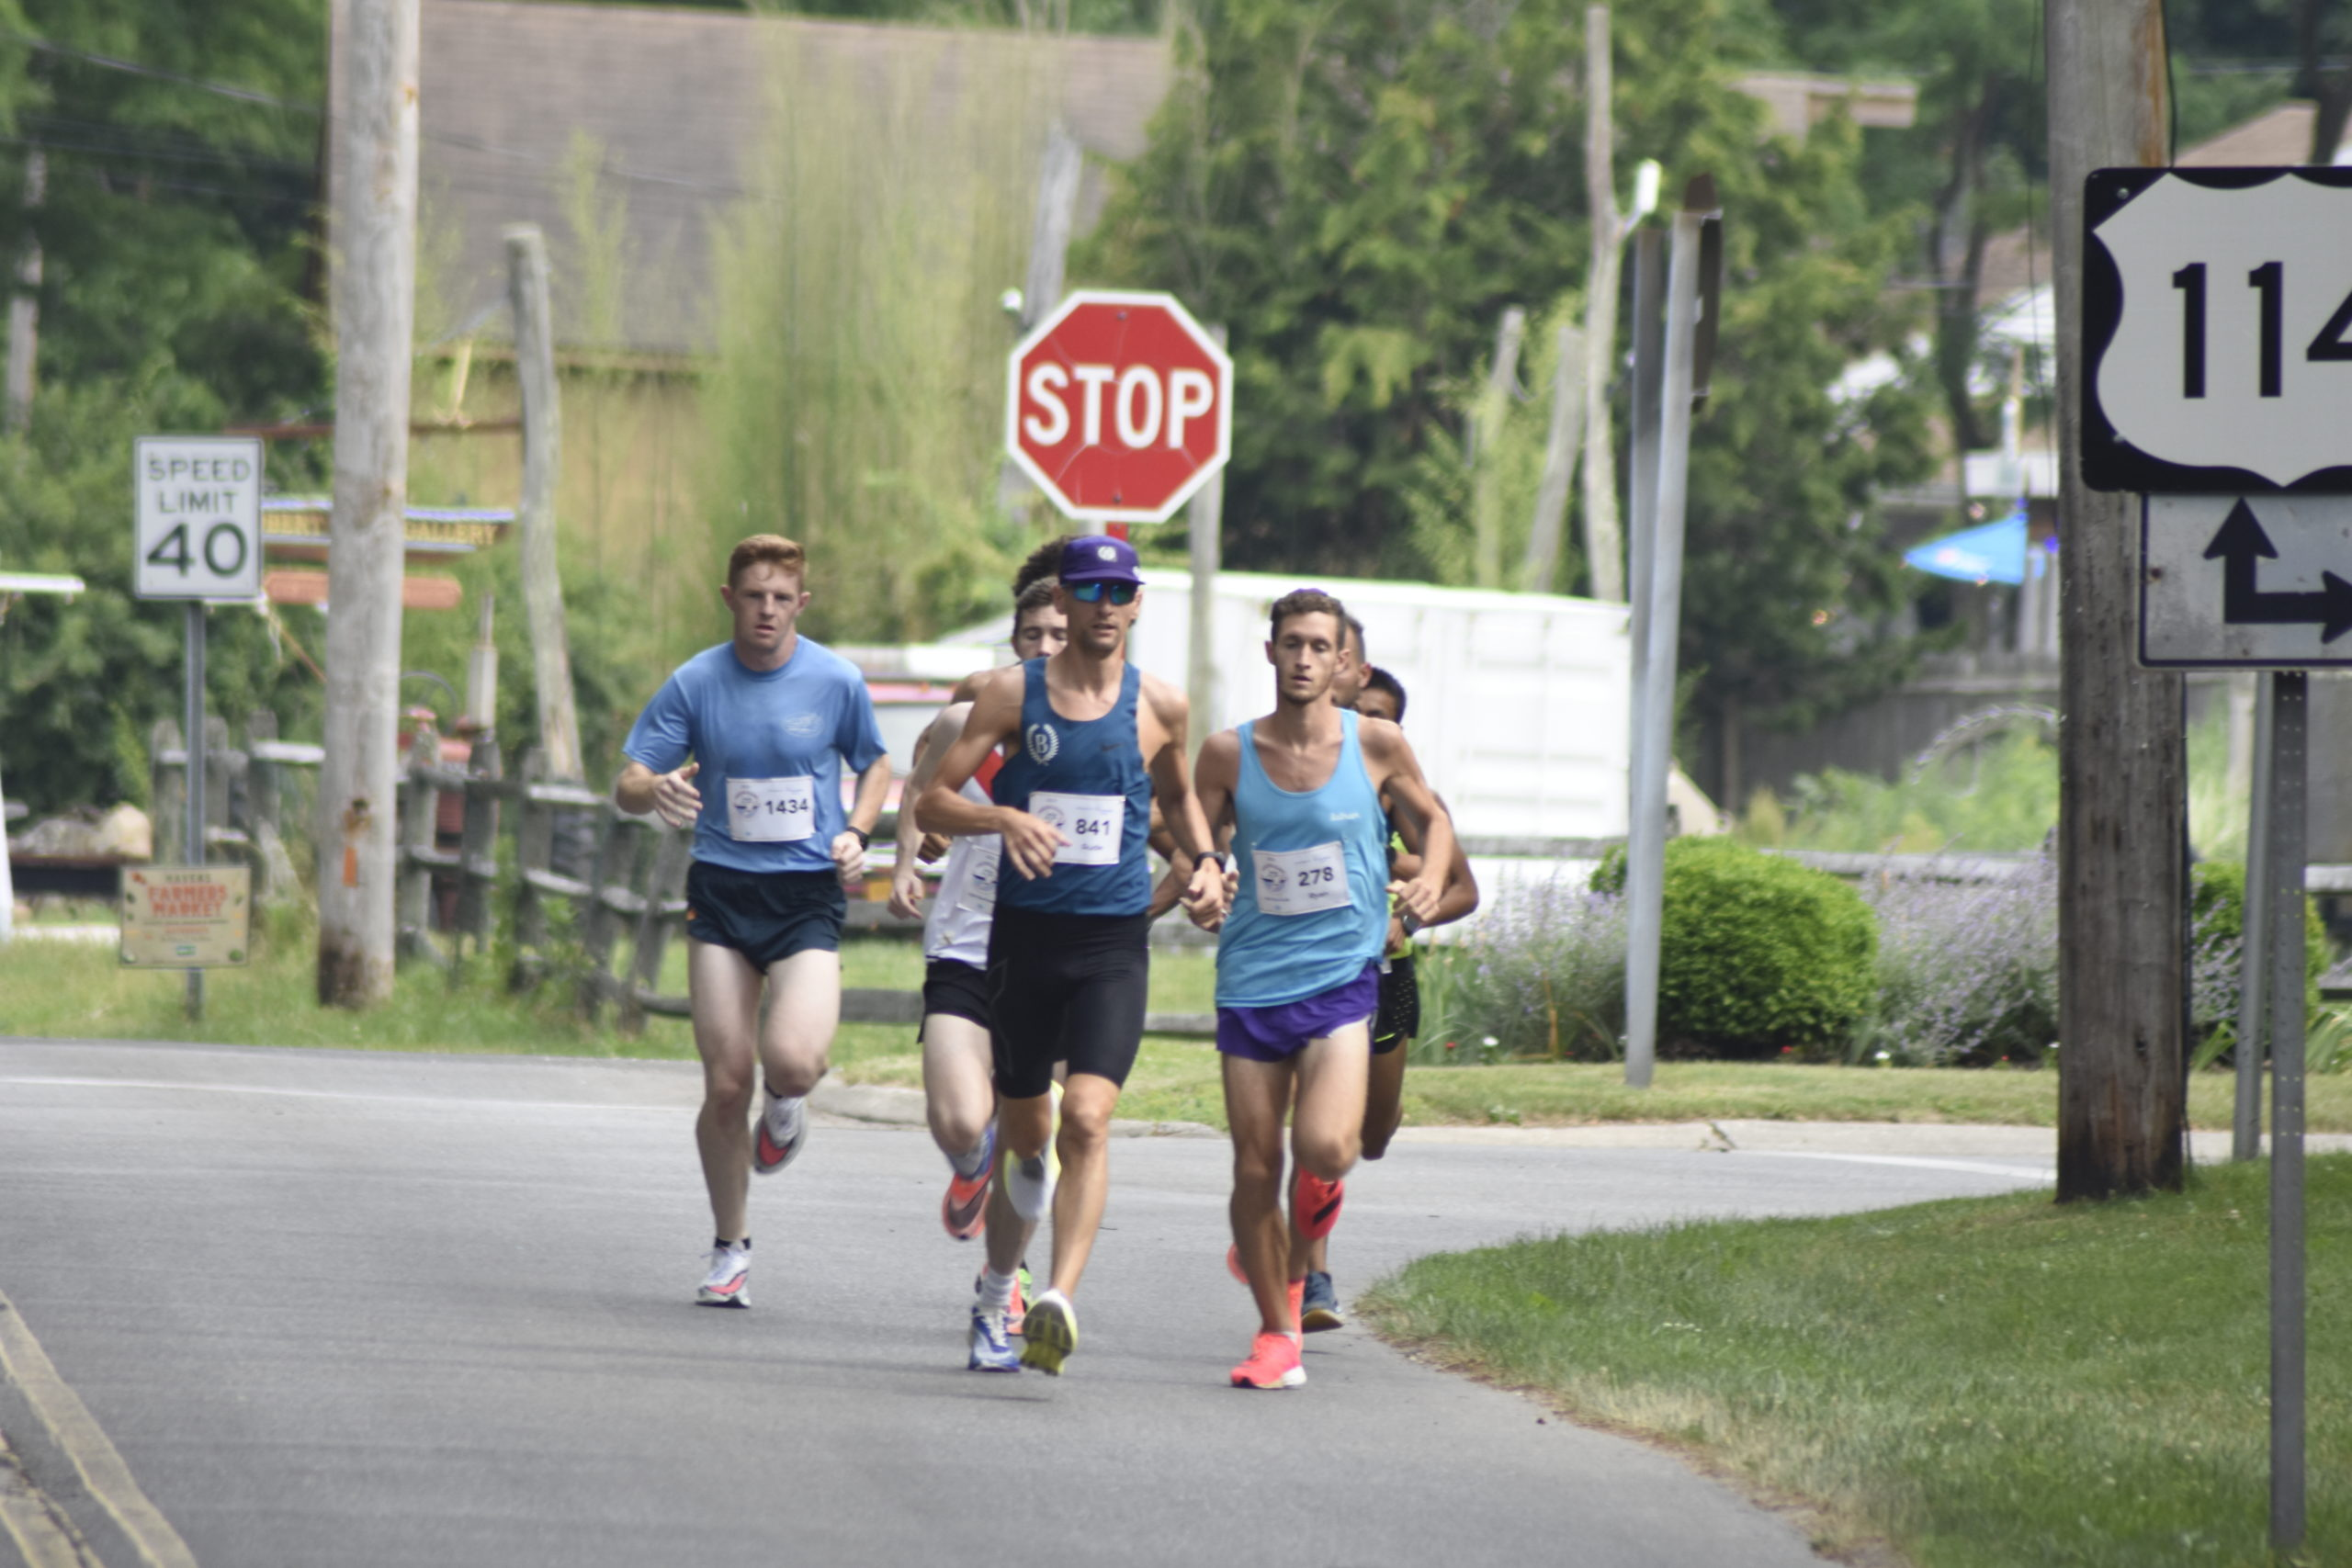 The lead pack of runners started to pull away from the initial pack not even a mile into the race.